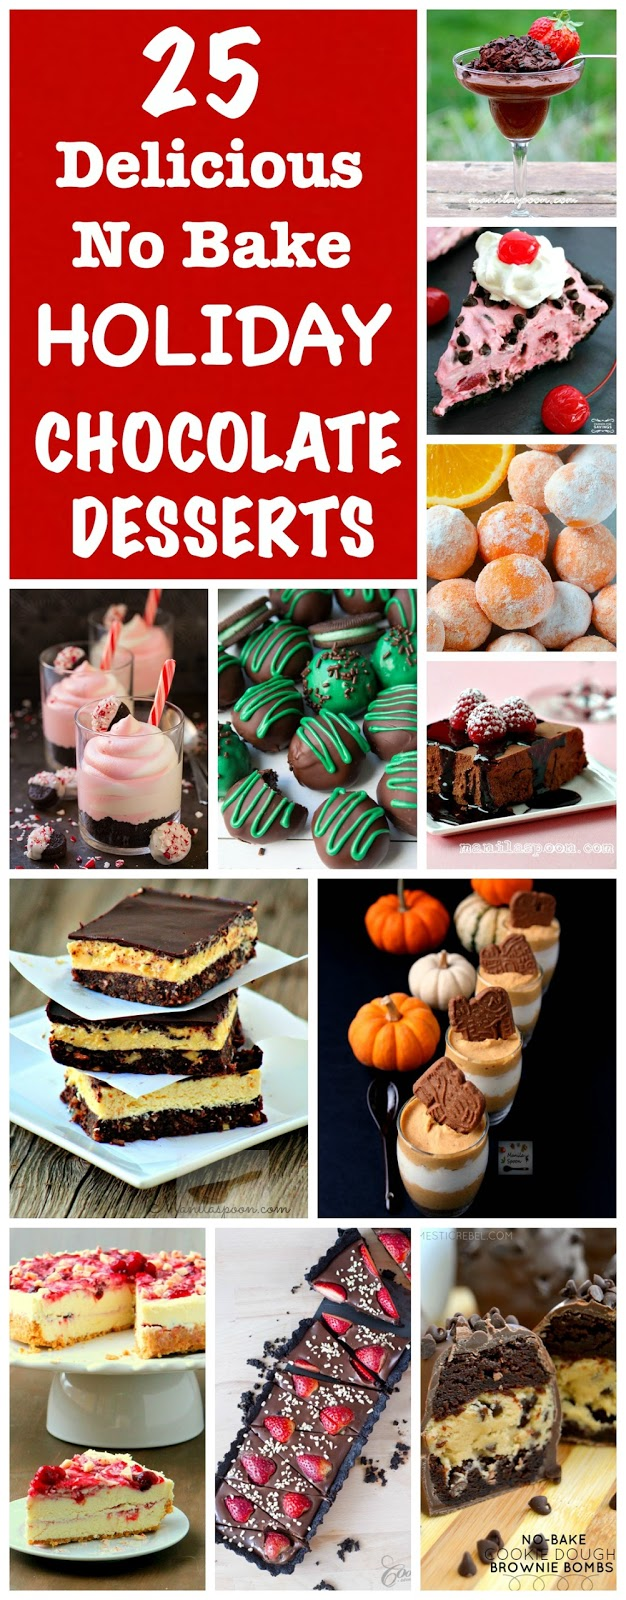 All the chocolate deliciousness you can enjoy in this delectable collection of 25 Delicious NO BAKE Chocolate Desserts!